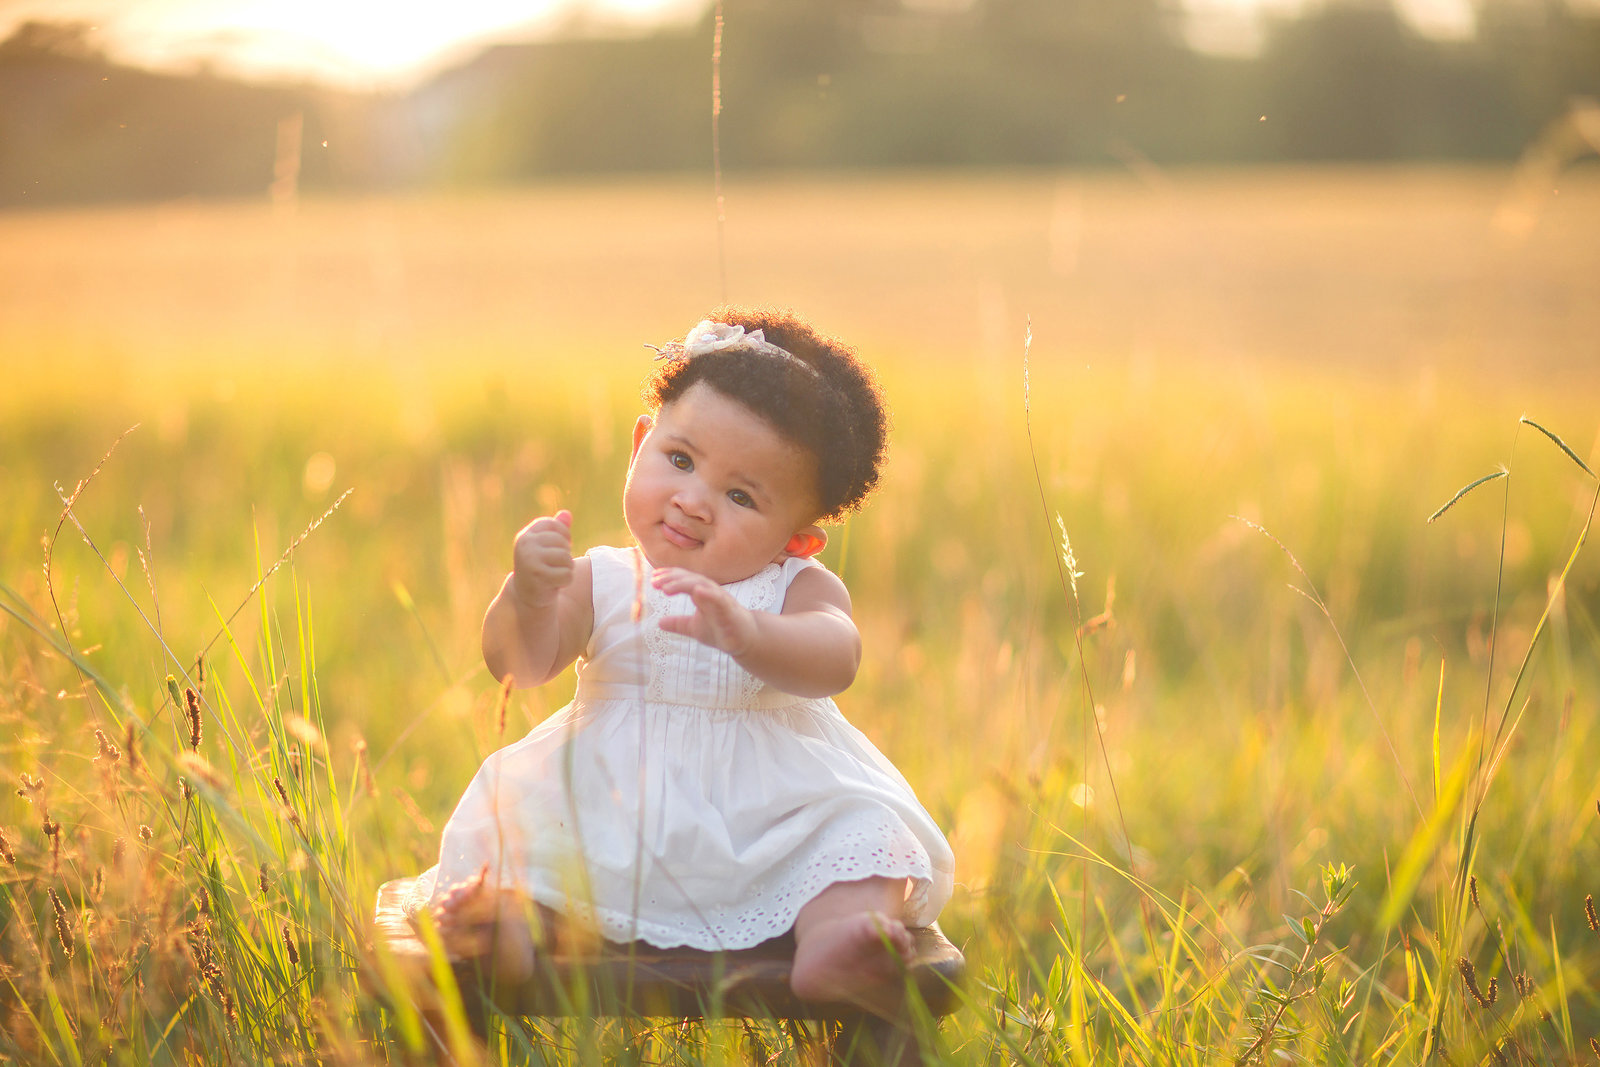 6-Months-Baby-Dress-Field-Sunset-Sitting